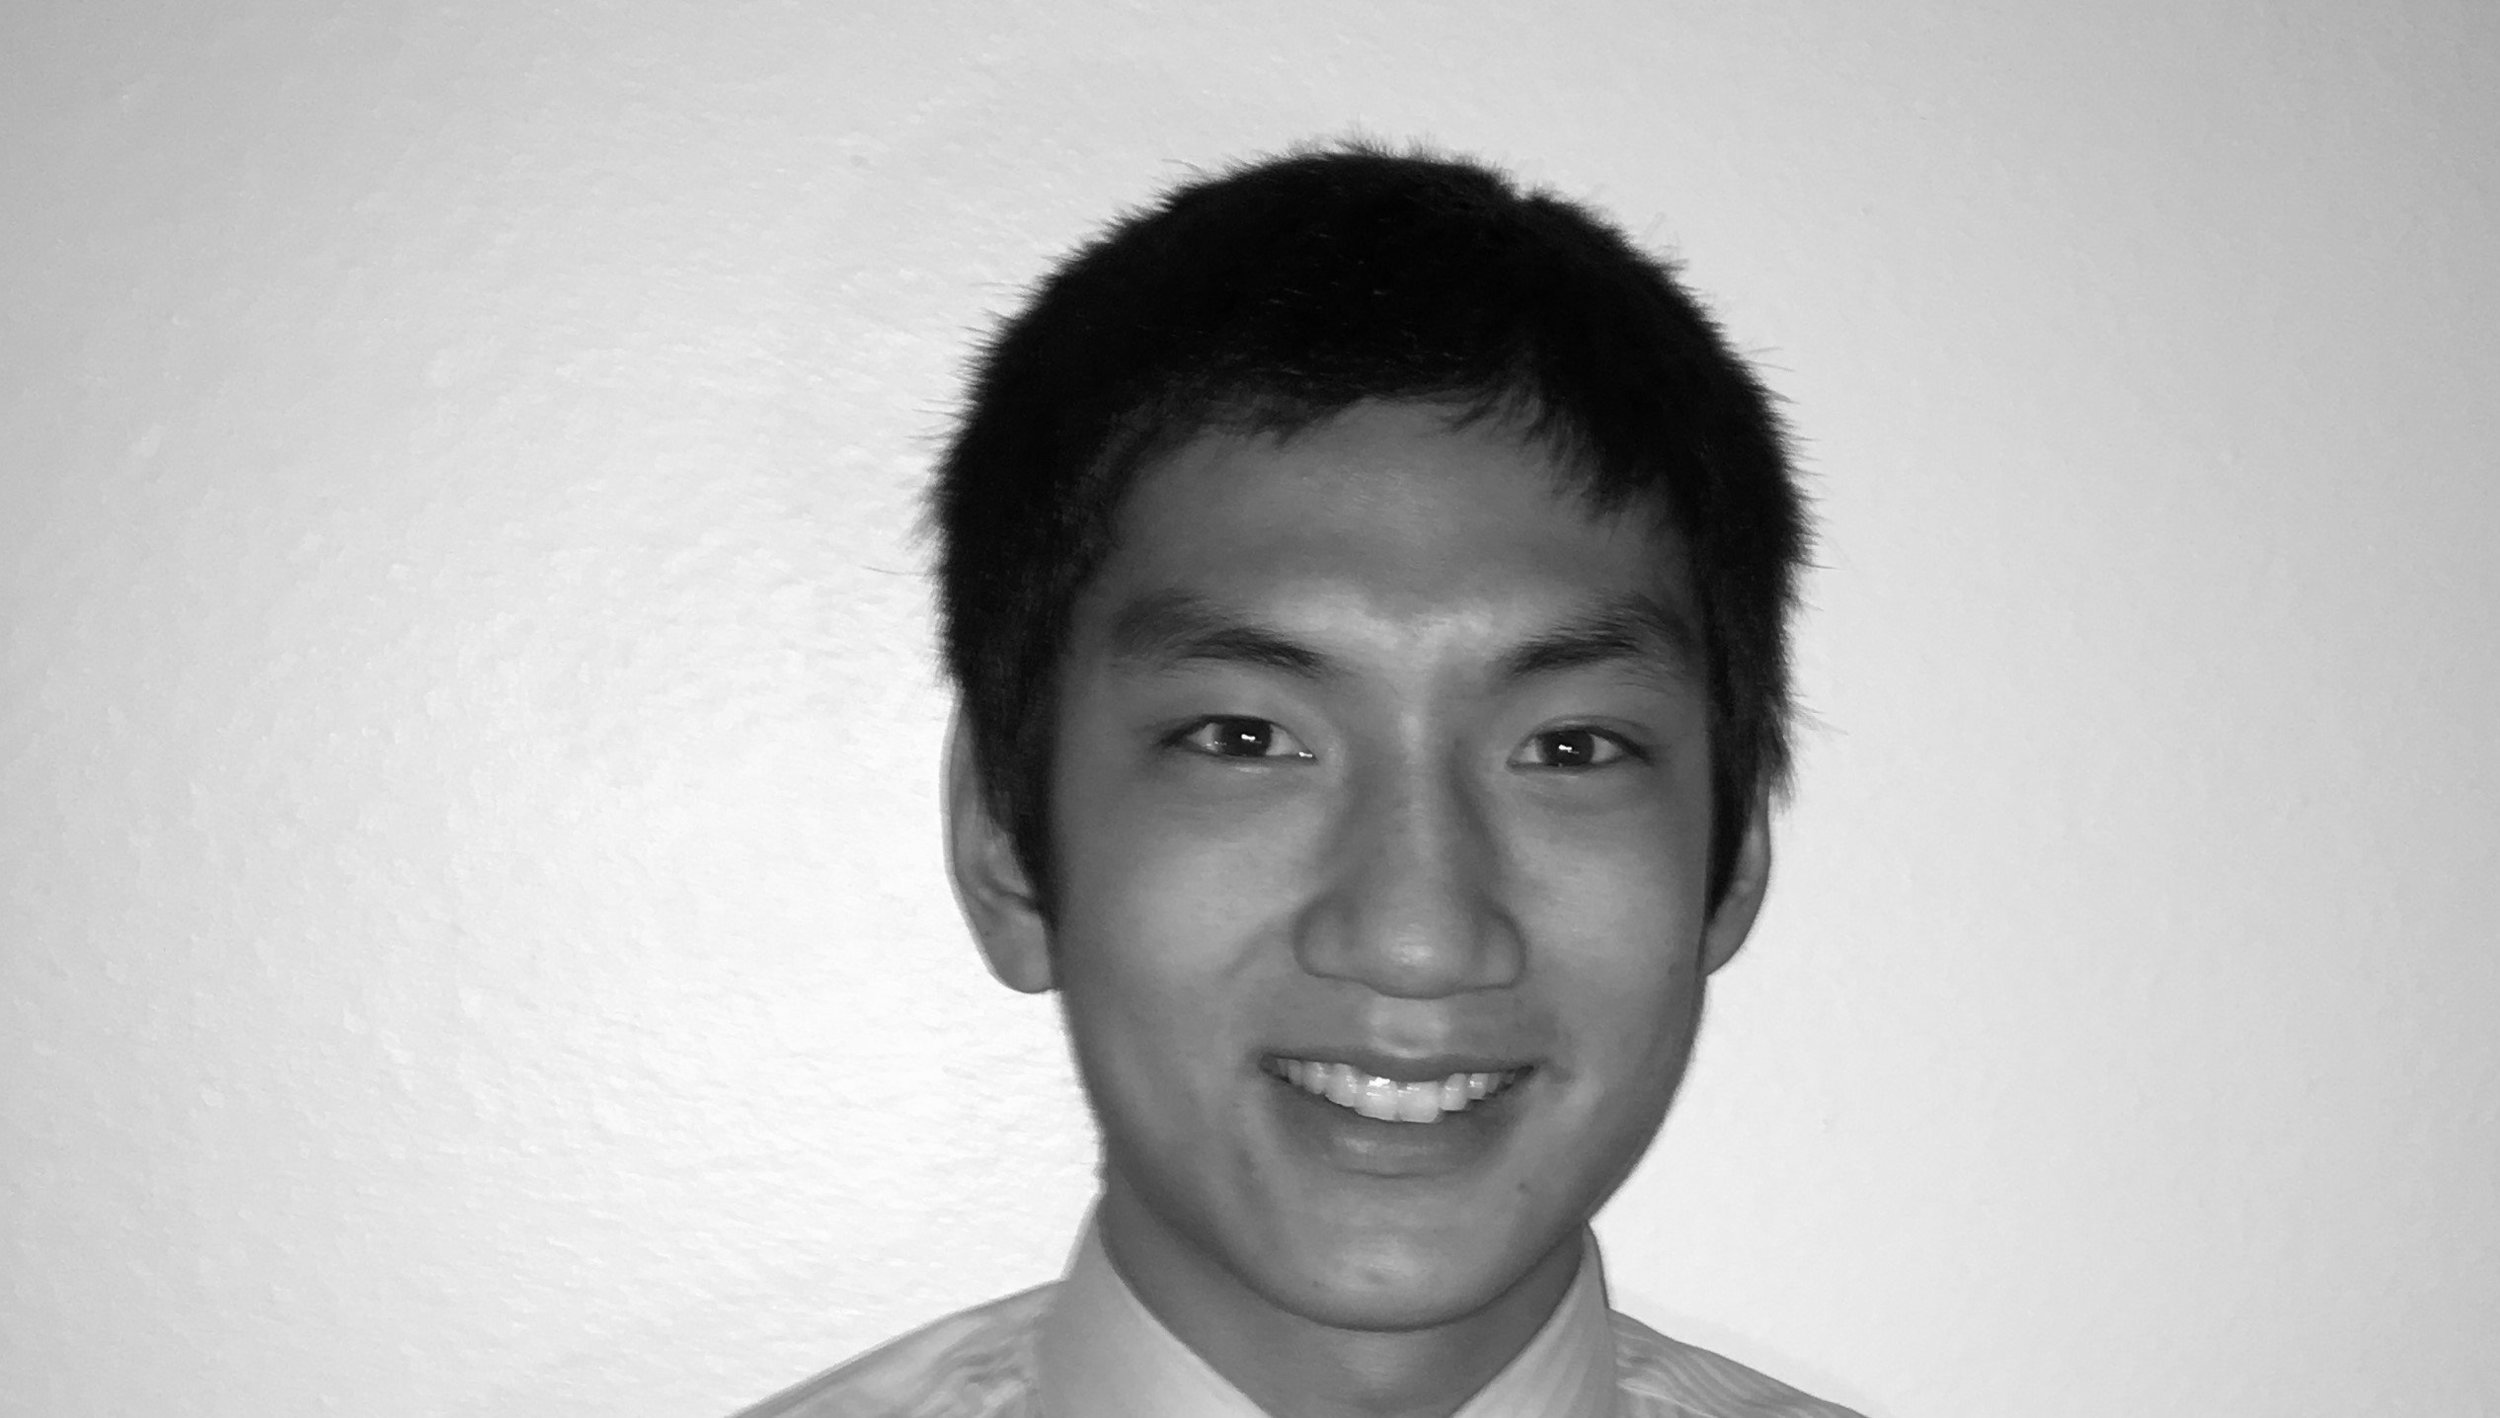 Bryan Zhu    Undergraduate   Bryan Zhu is a 4th year bioengineering student at UCSD. He has interest in understanding the way nature has solved its design challenges. Bryan is active in the biomimicry community in San Diego. His research project focuses on optimizing surface geometries for photosynthesis using a range of CAD-based environments.